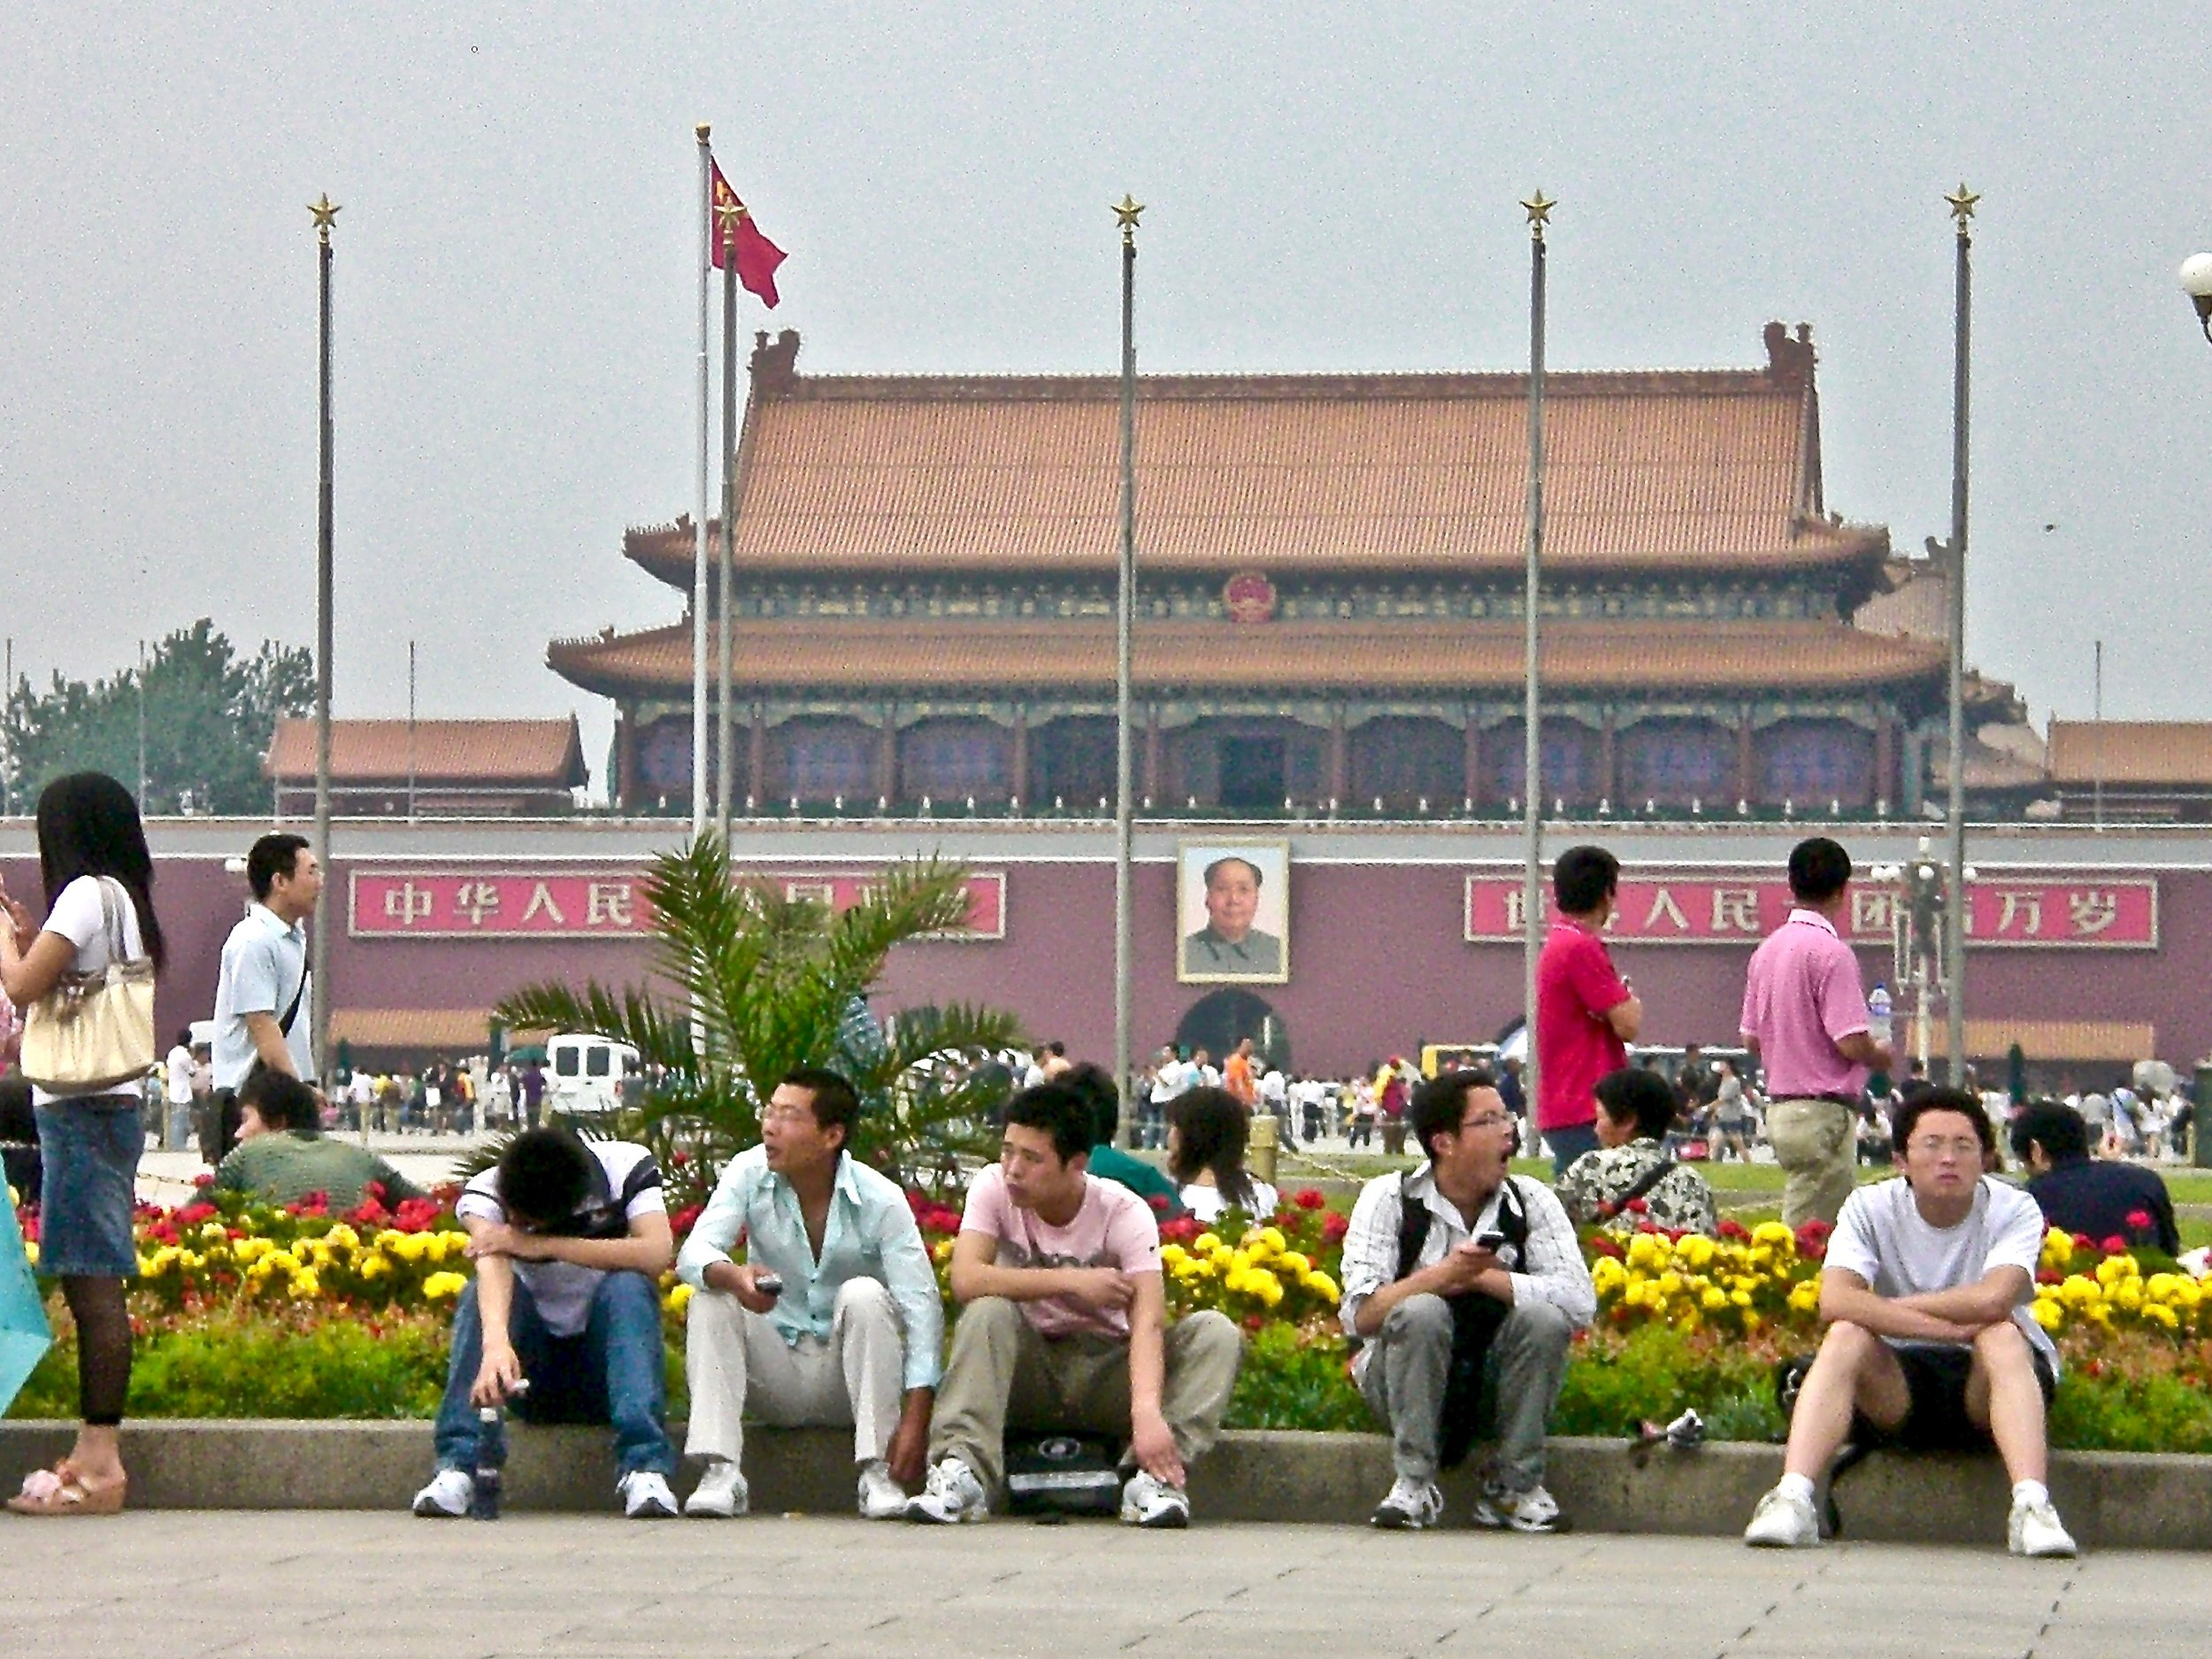 Chinese tourists on Tiananmen Square, Beijing. (C) Remko Tanis